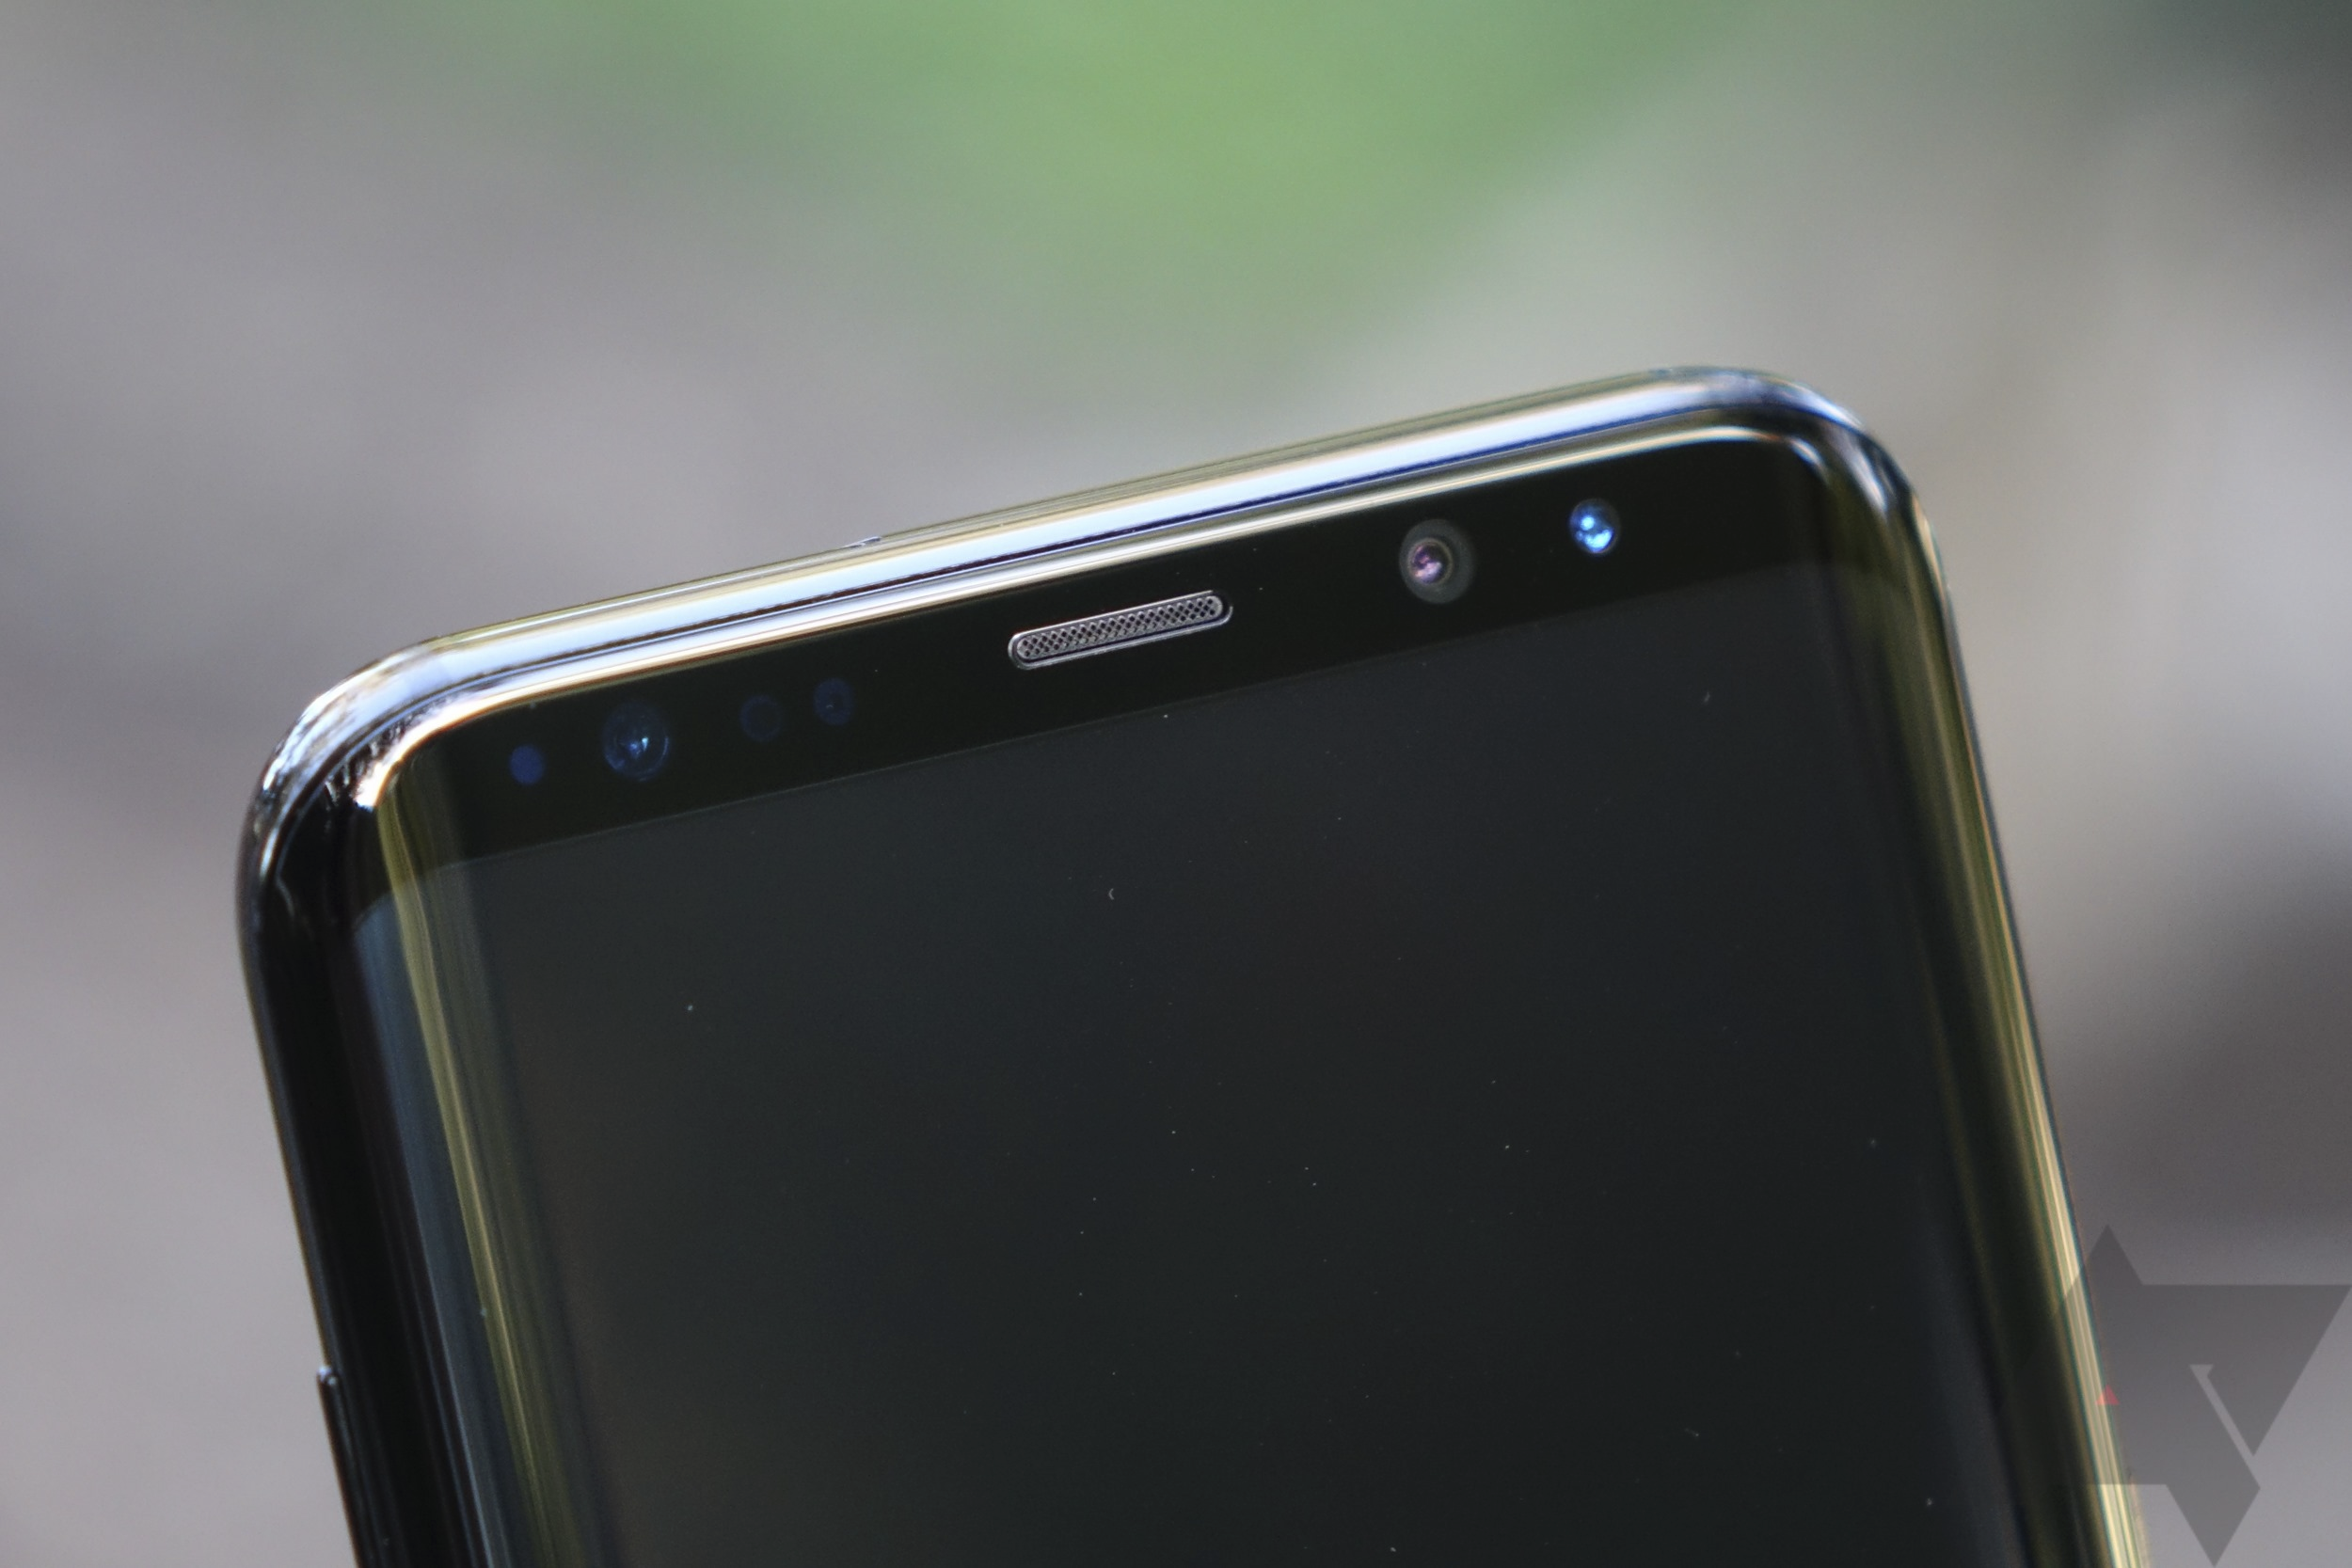 Sprint Galaxy S8 and S8+ get updates for Calling PLUS, a